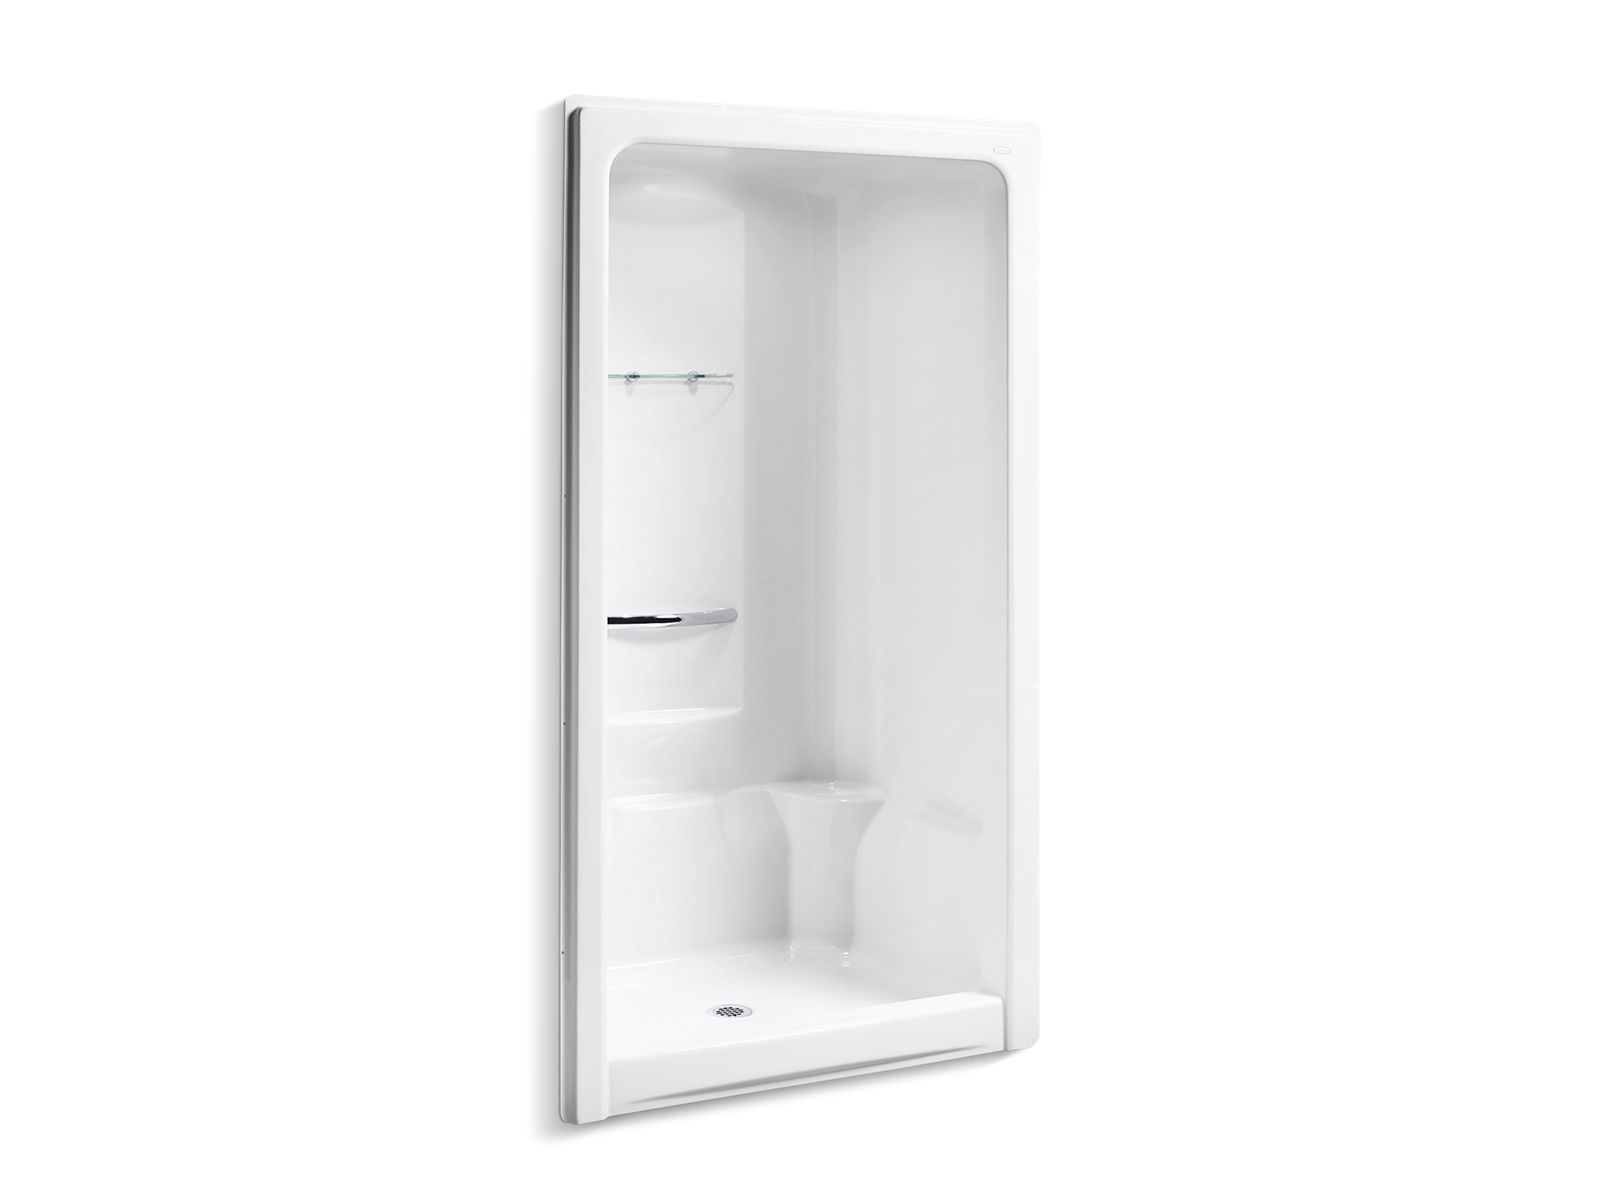 Charmant Sonata 4 Foot Shower Stall | K 1687 | KOHLER